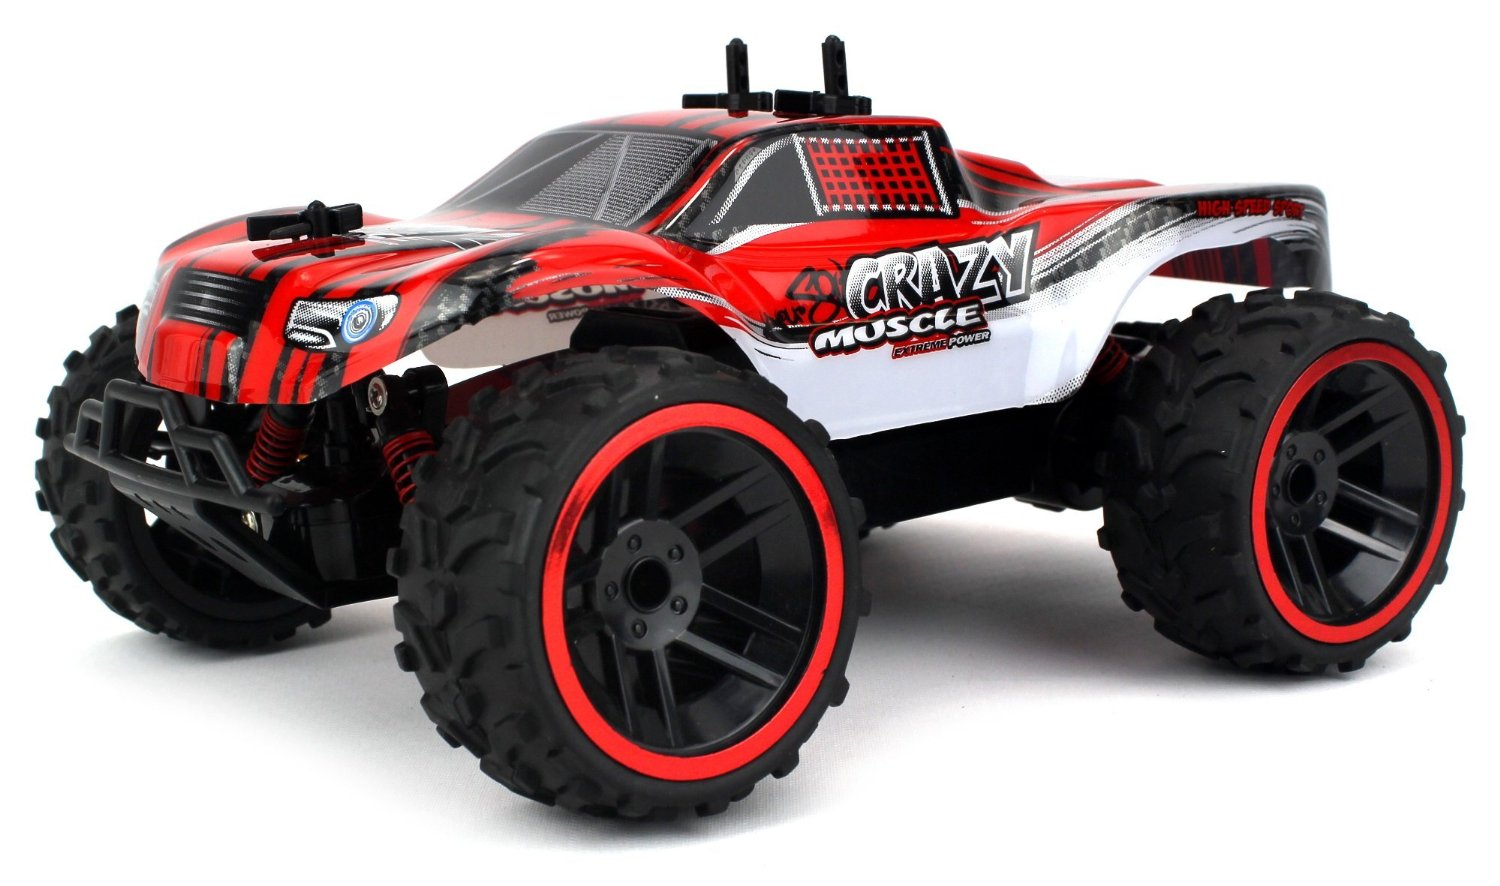 Buggy Crazy Muscle Remote Control RC Truck Truggy 2.4 GHz PRO System 1:16 Scale Size RTR w... by Velocity Toys